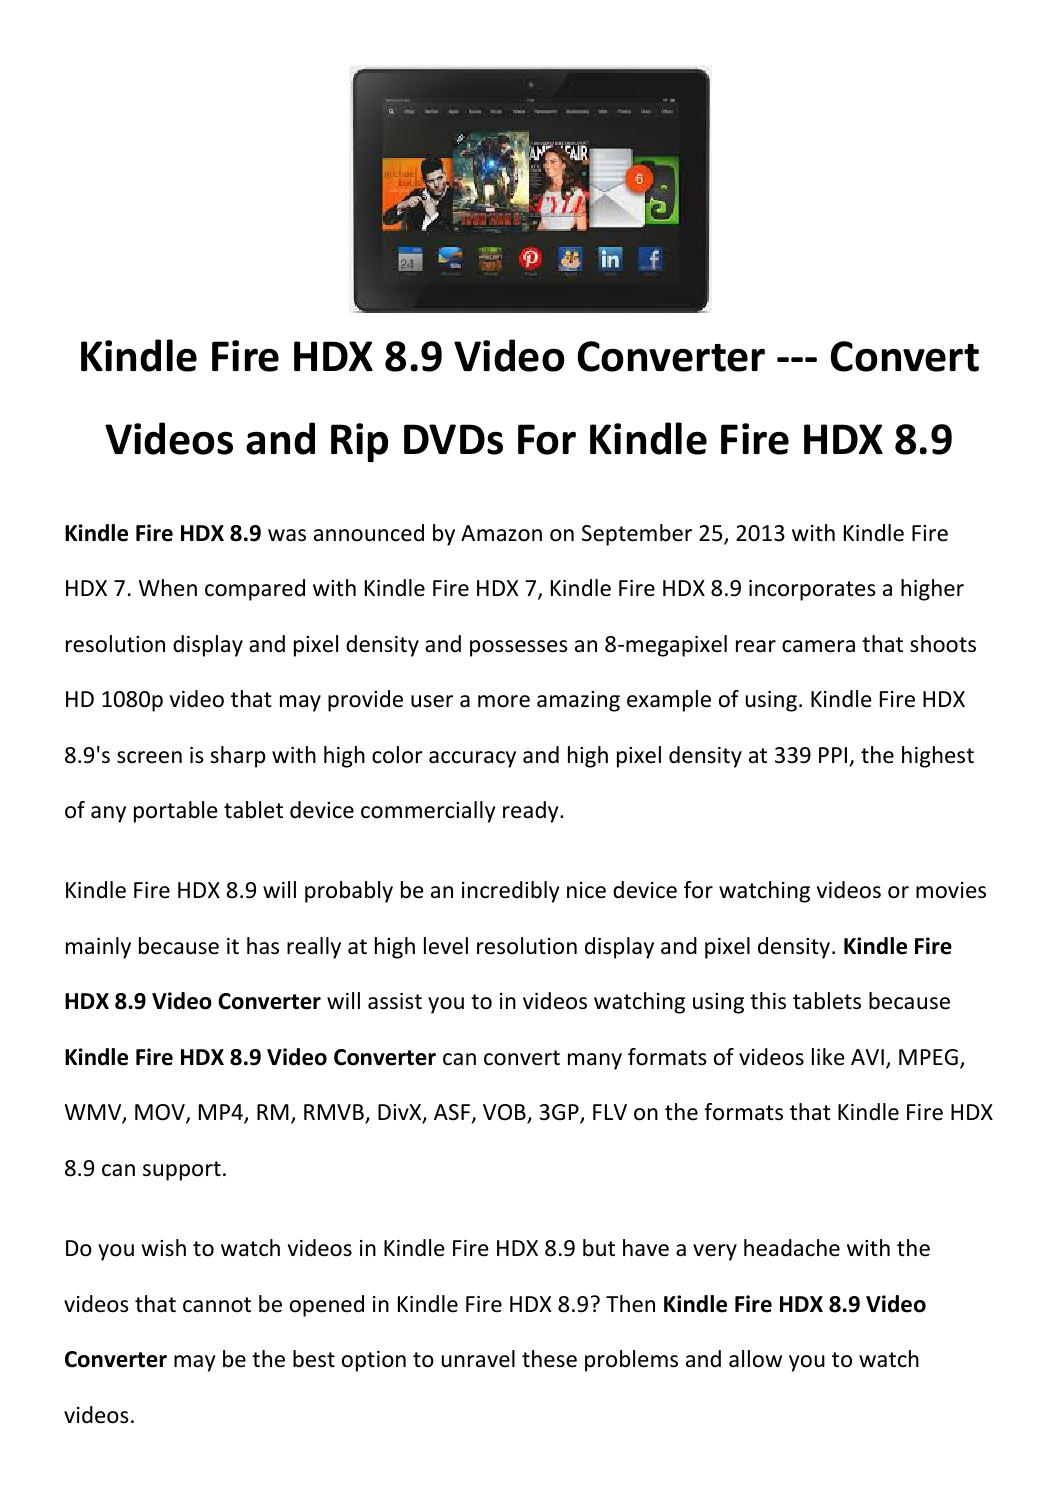 Kindle fire hdx 8 9 video converter by Rick Drolet - issuu